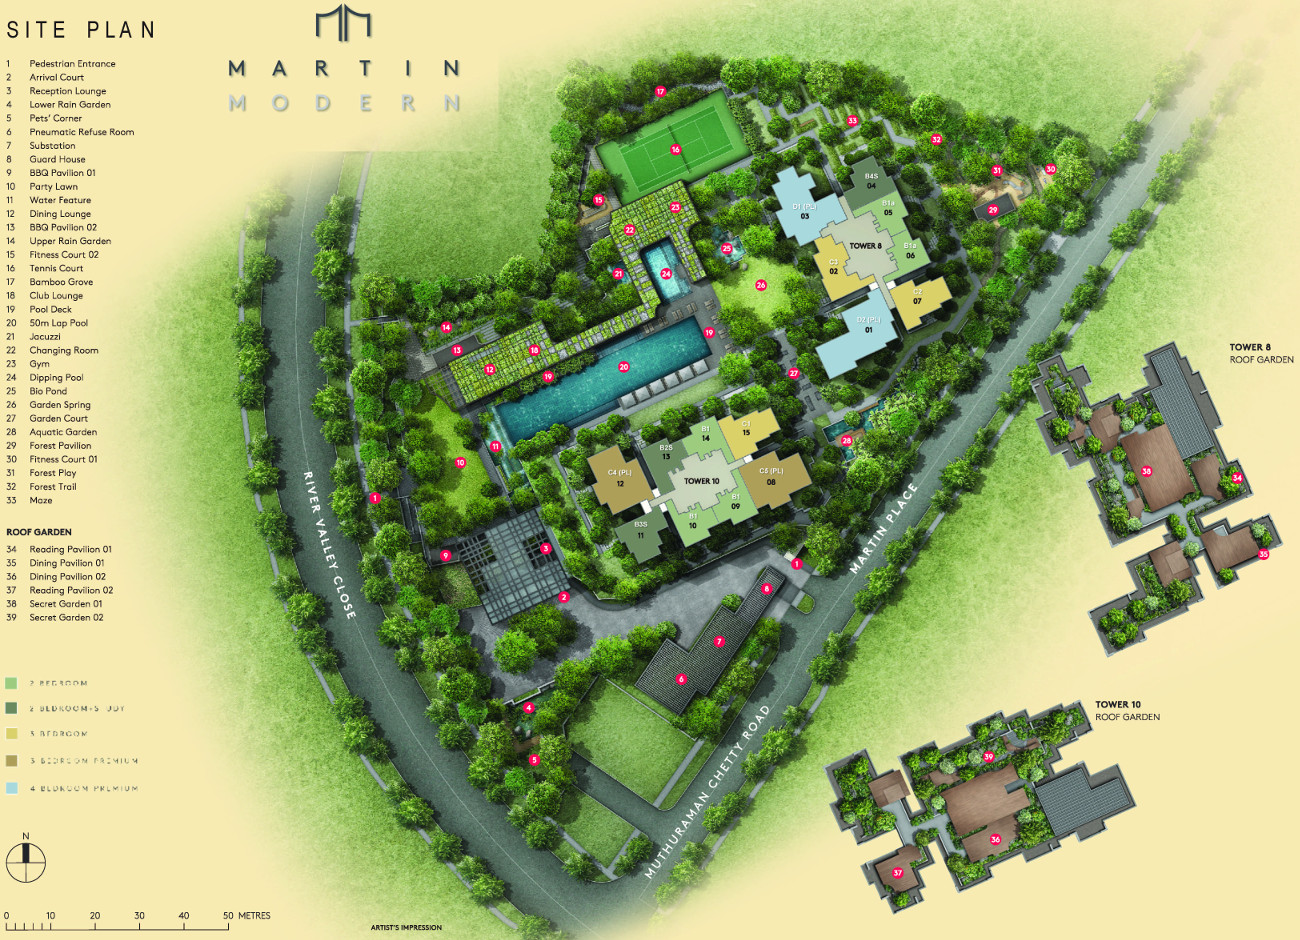 Martin Modern Site Plan Layout